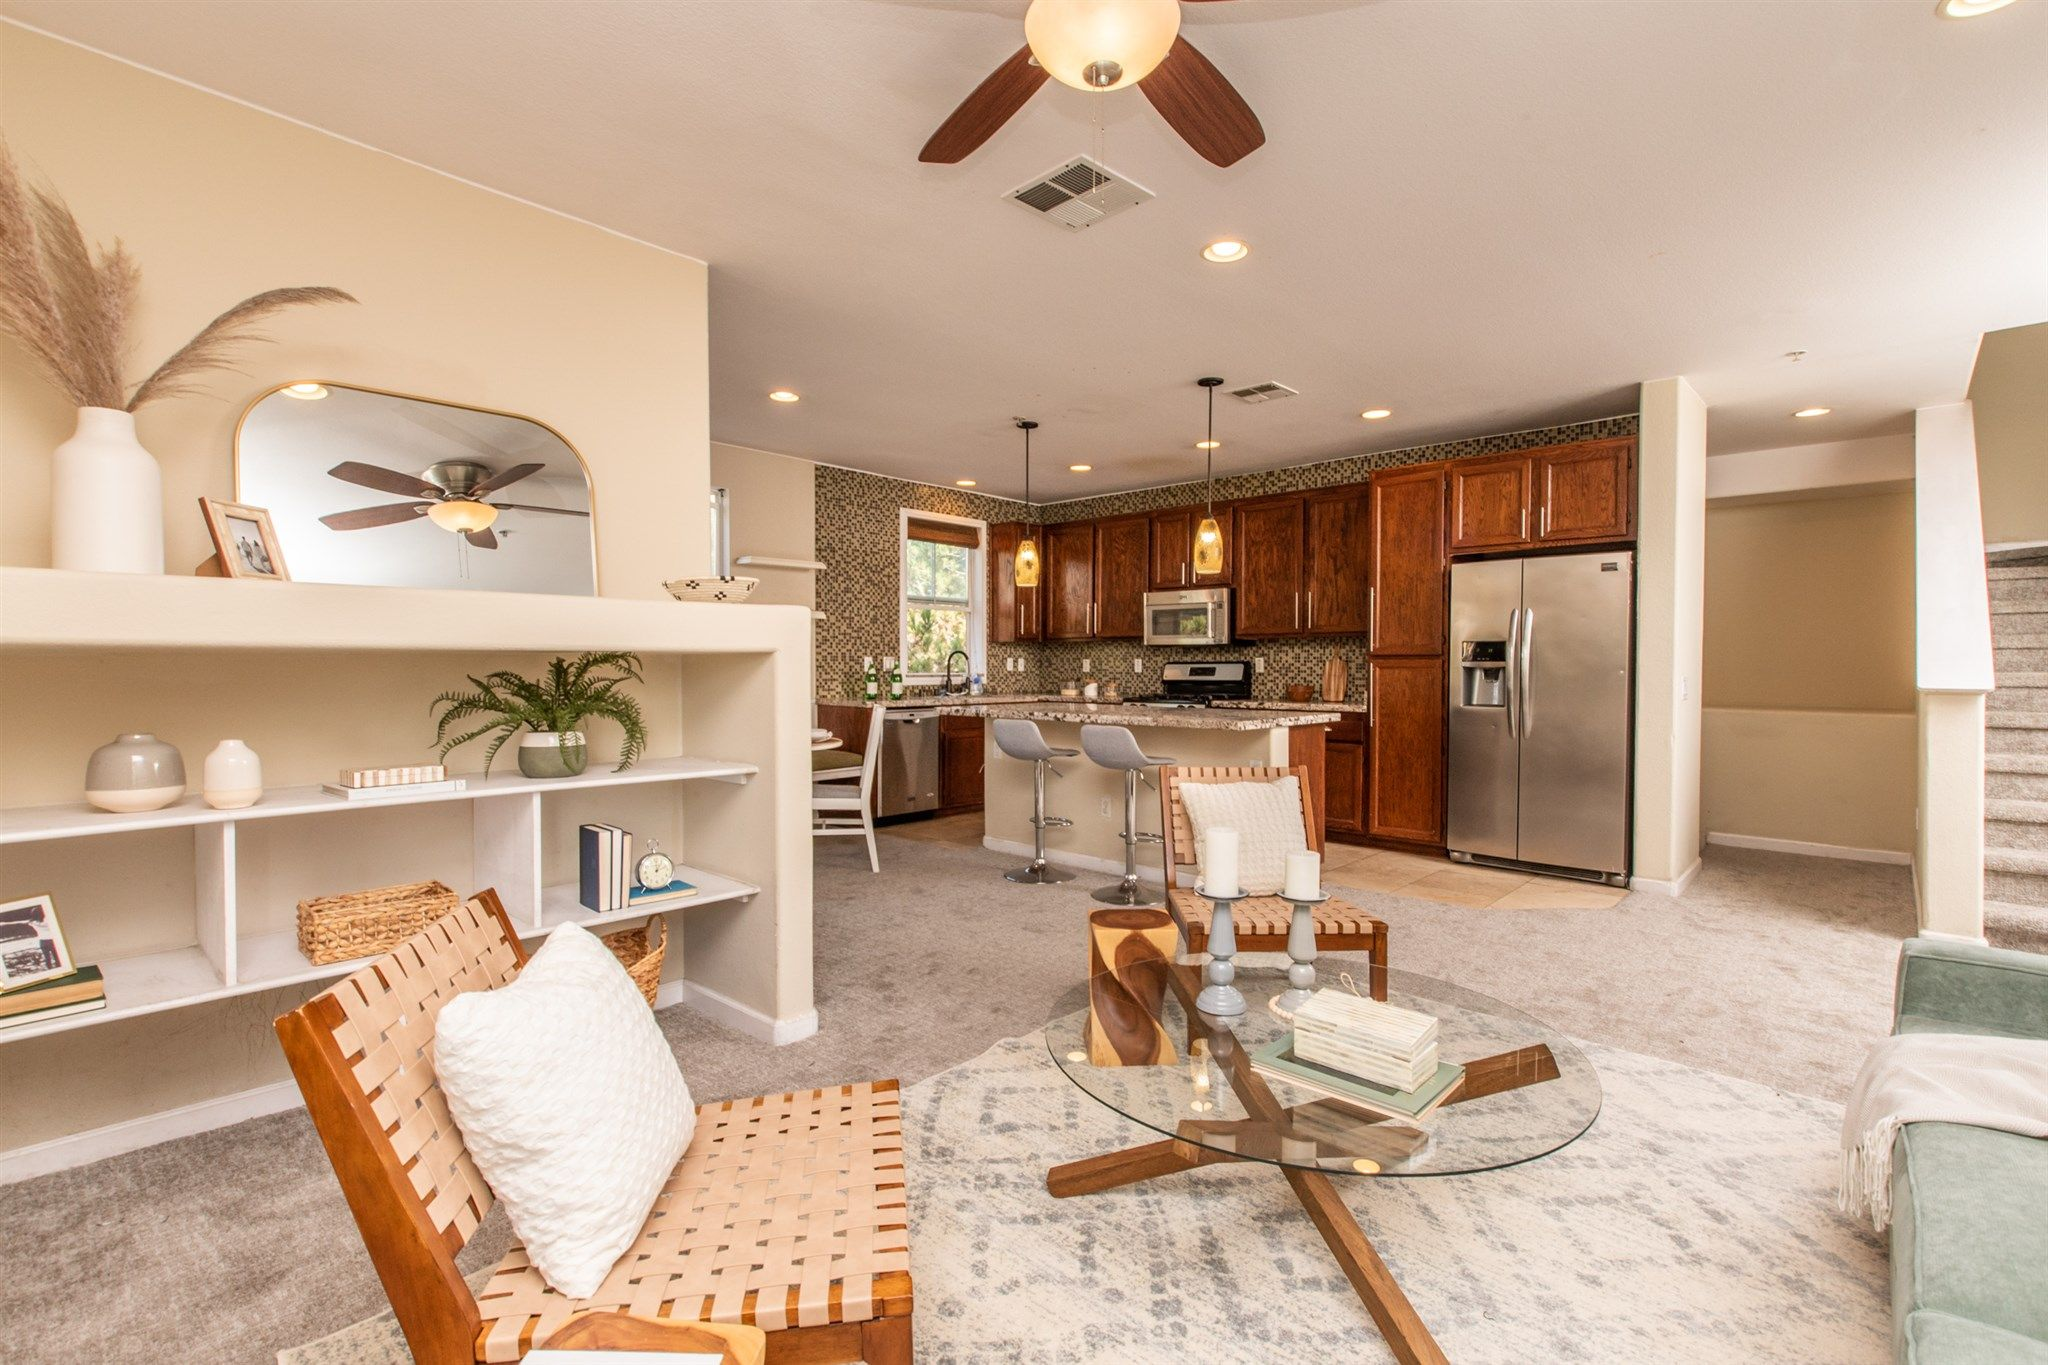 Main Photo: Townhouse for sale : 3 bedrooms : 1306 CASSIOPEIA LANE in SAN DIEGO